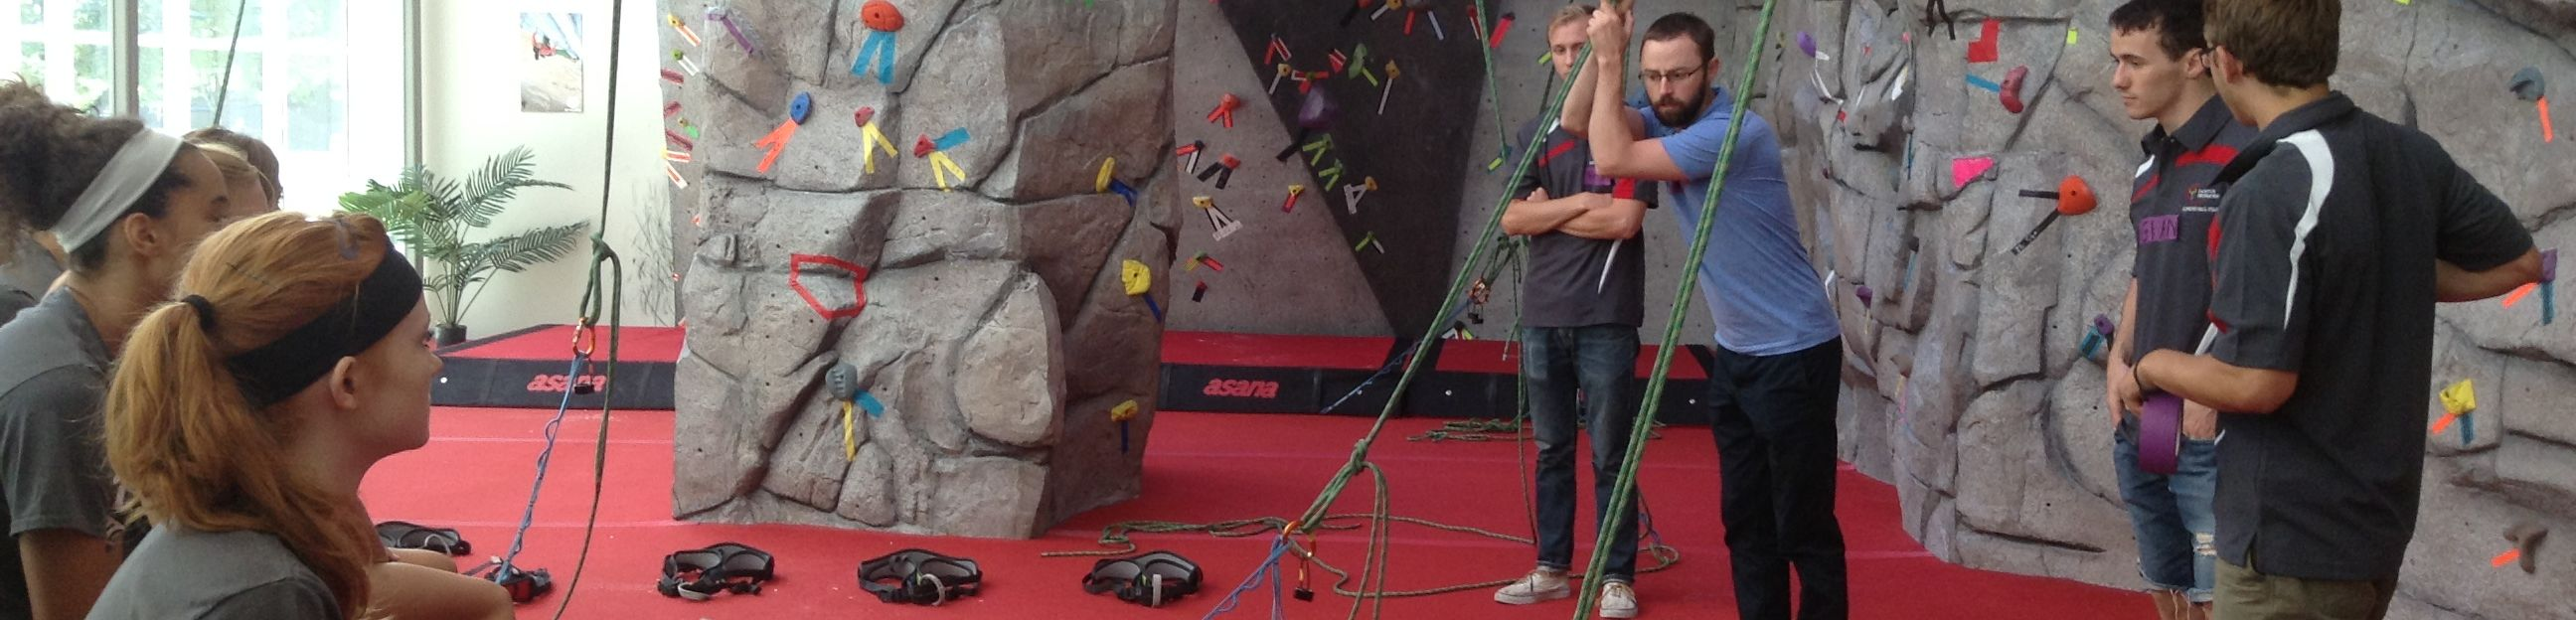 Interior of climbing Wall during a climbing clinic